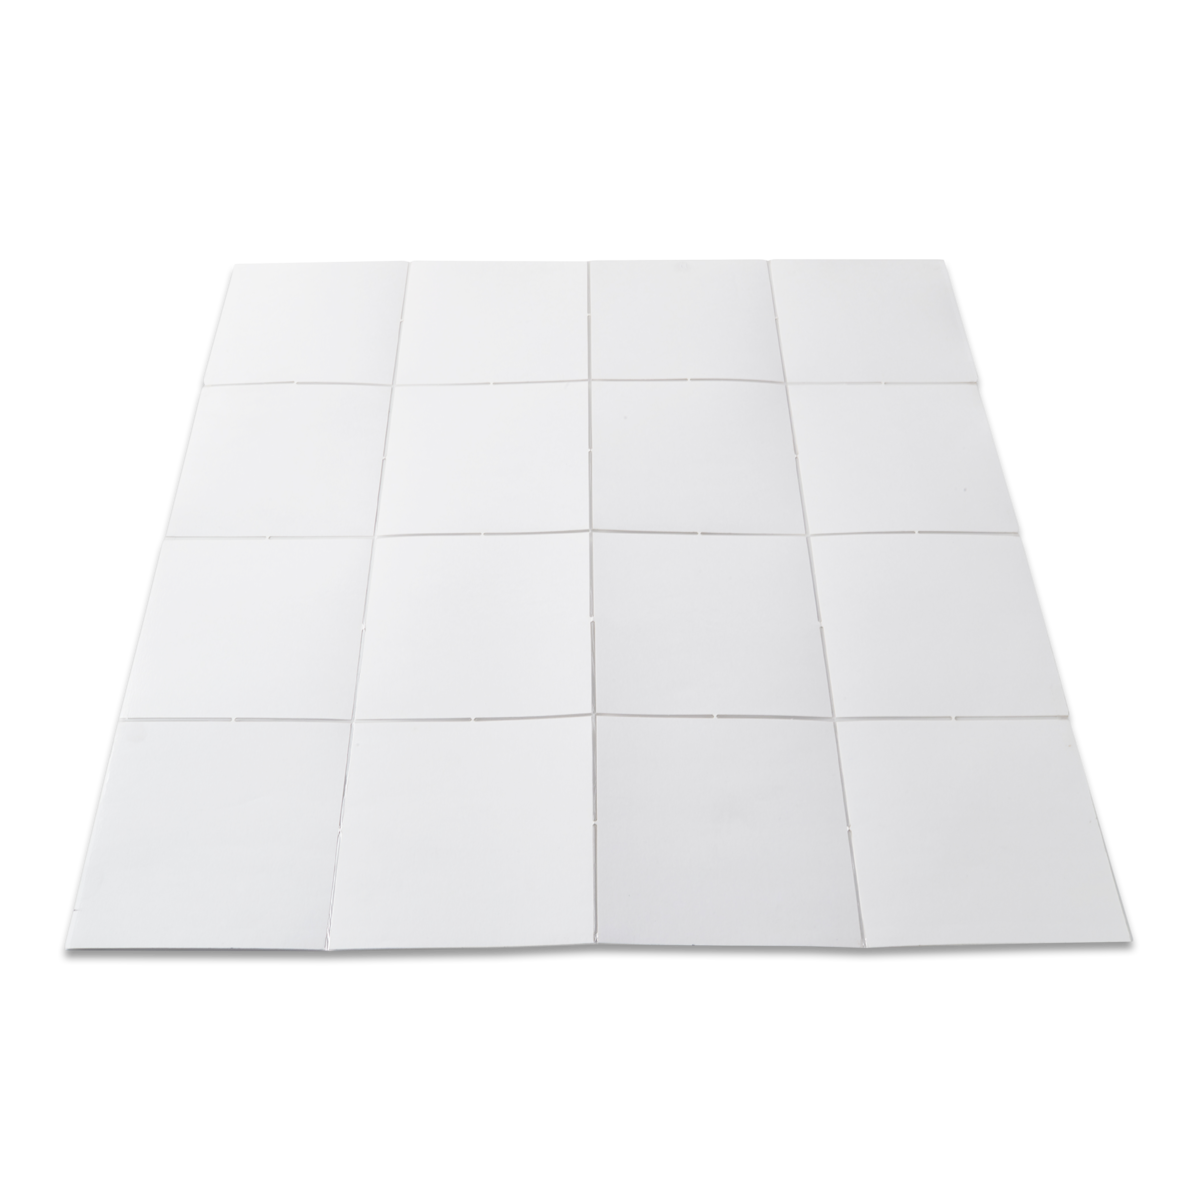 2 Reusable fold-out whiteboards